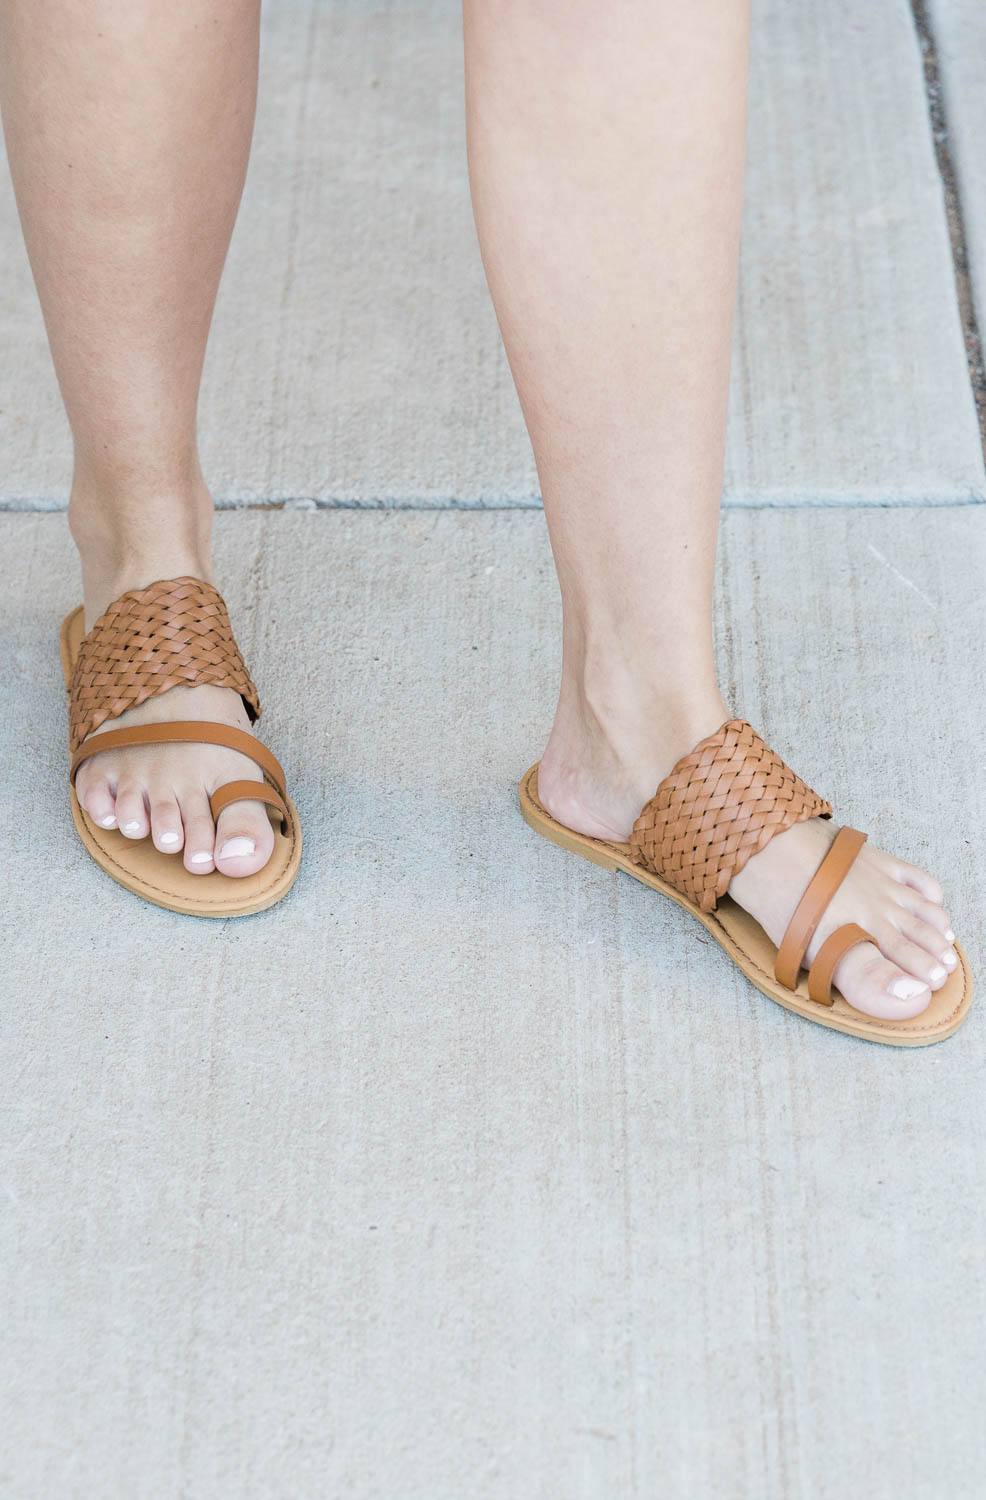 The Parallel Sandals in 2 Colors